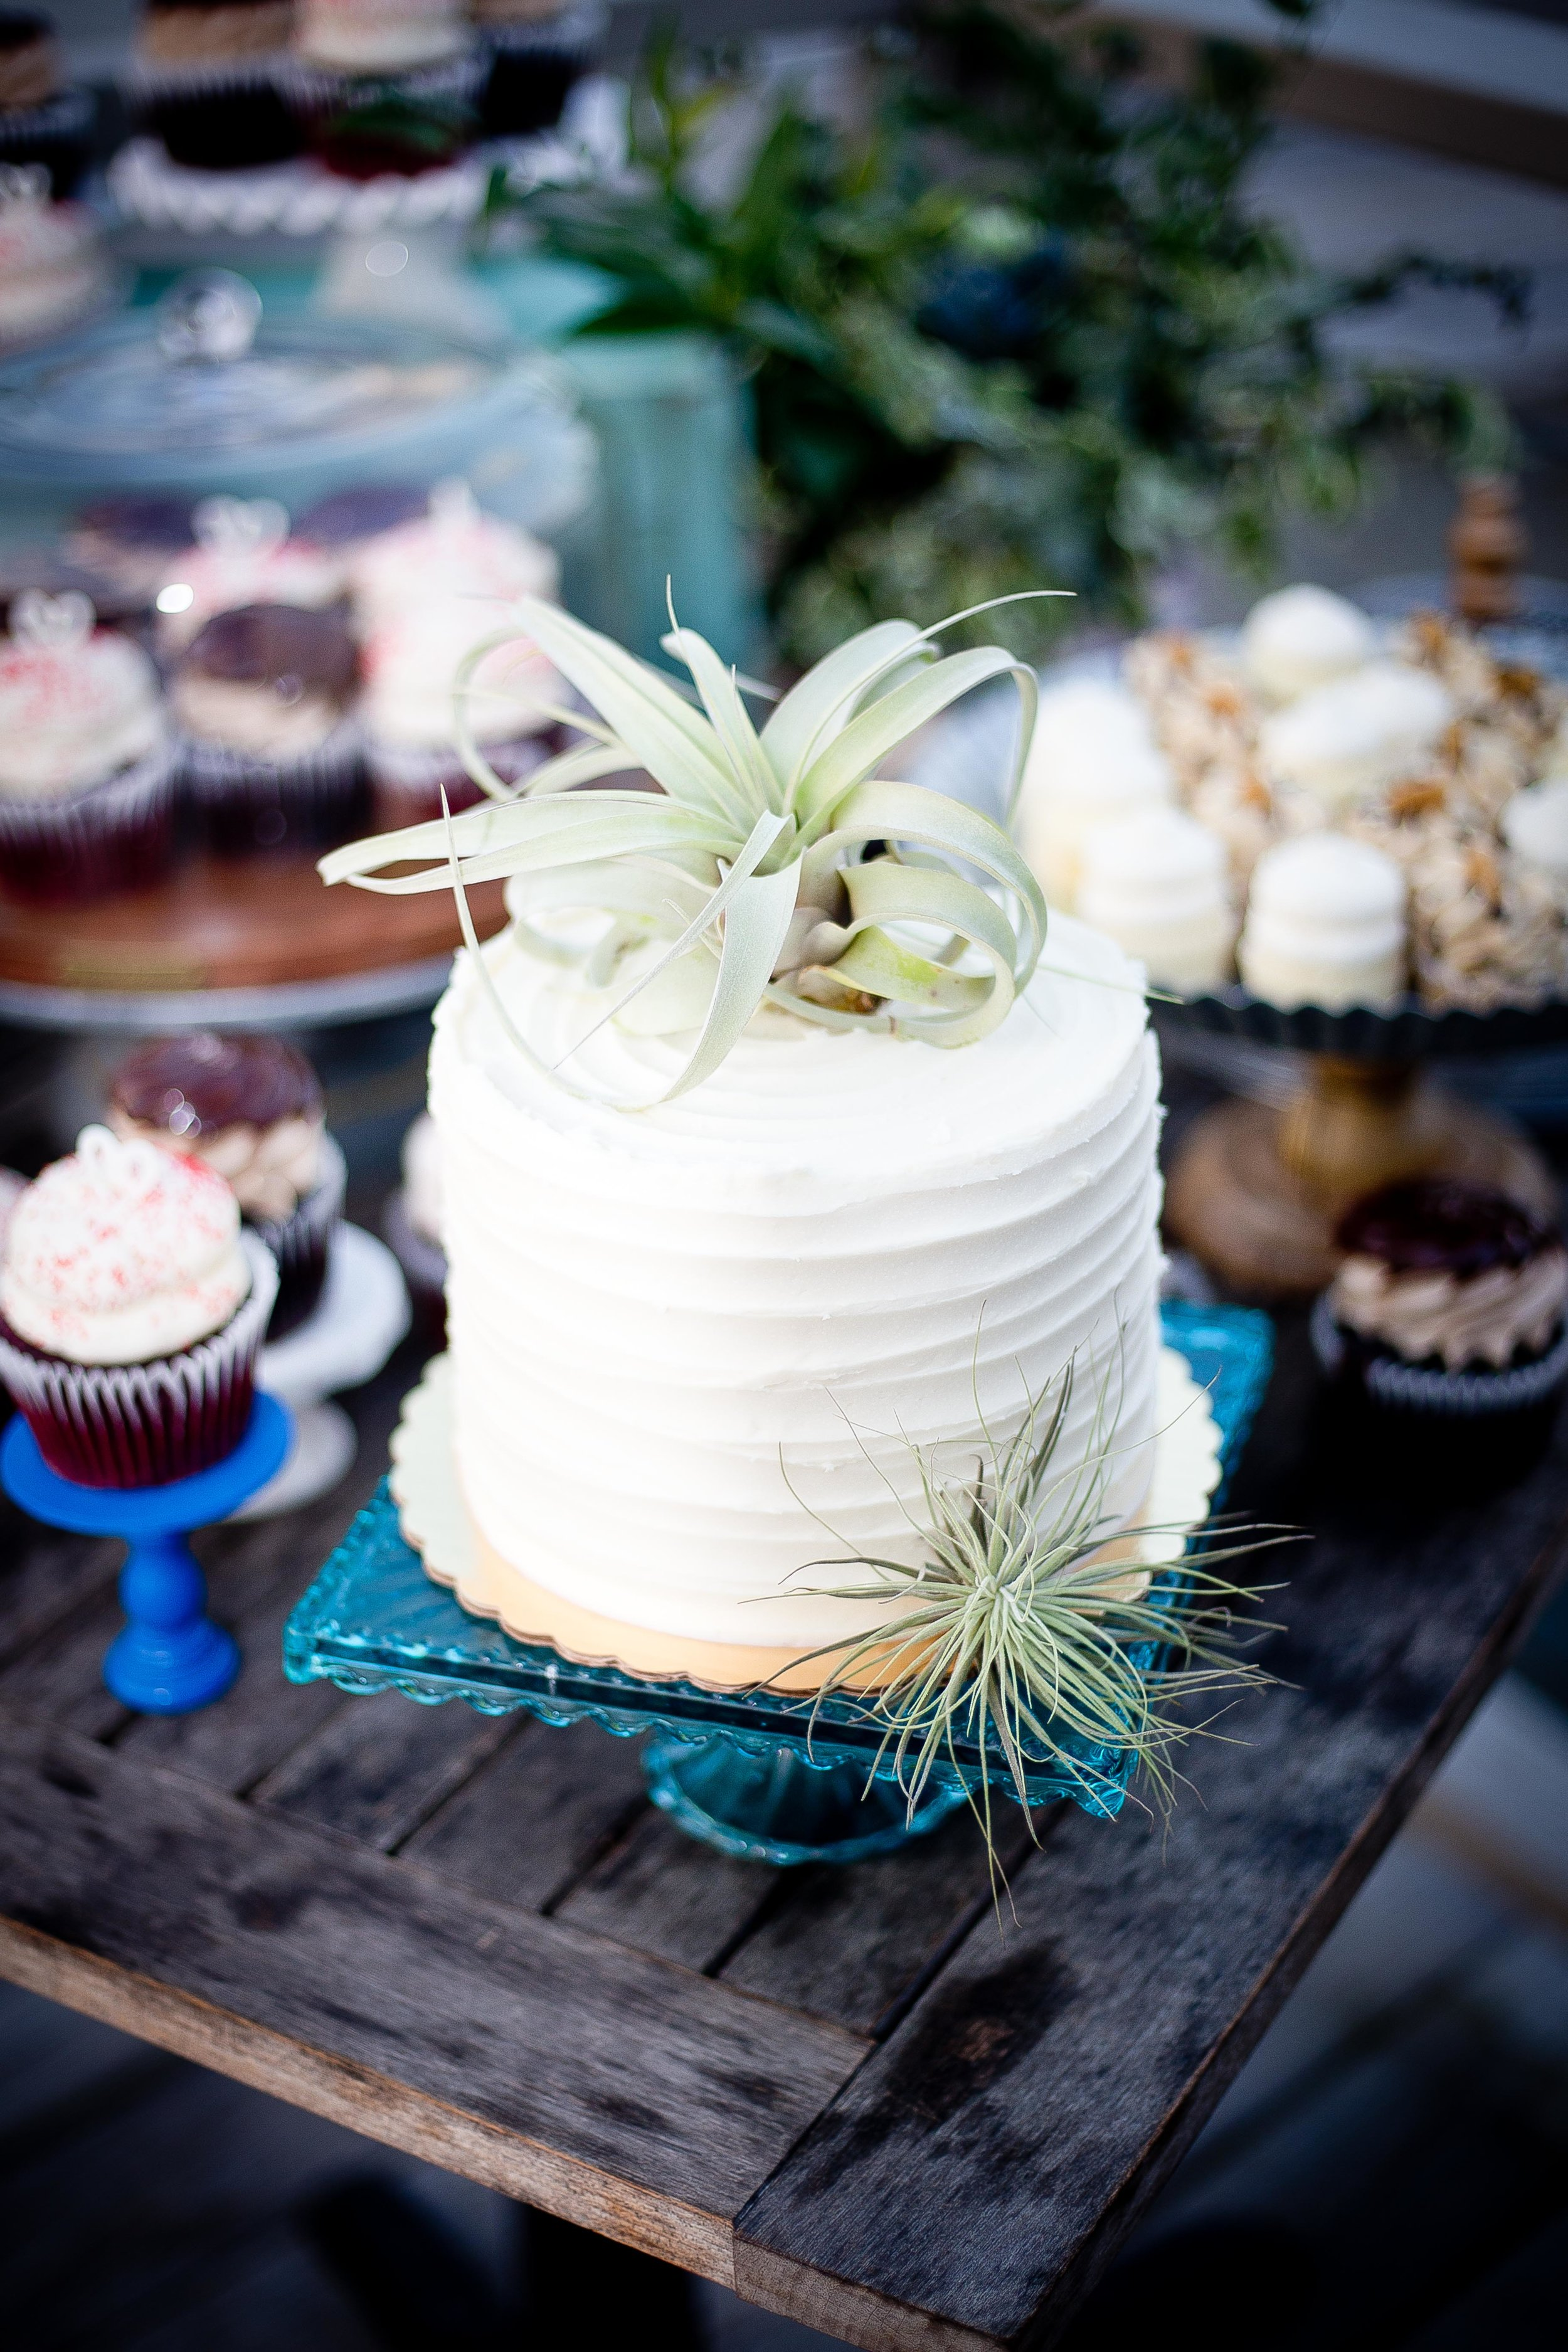 Tina-and-Javin-Wedding-Wedding-Cake-Savannah-Bakery-GiGis-Cupcakes-RedVelvet-Airplant-Savannah-Planner-Ivory-and-Beau-Succulent-Cakes-Natural-Caketoppers-Wyld-Dock-Bar-Bride-Wedding-Deserts-Cupcakes-Airplant-Wedding-Caketopper--jpg.jpg